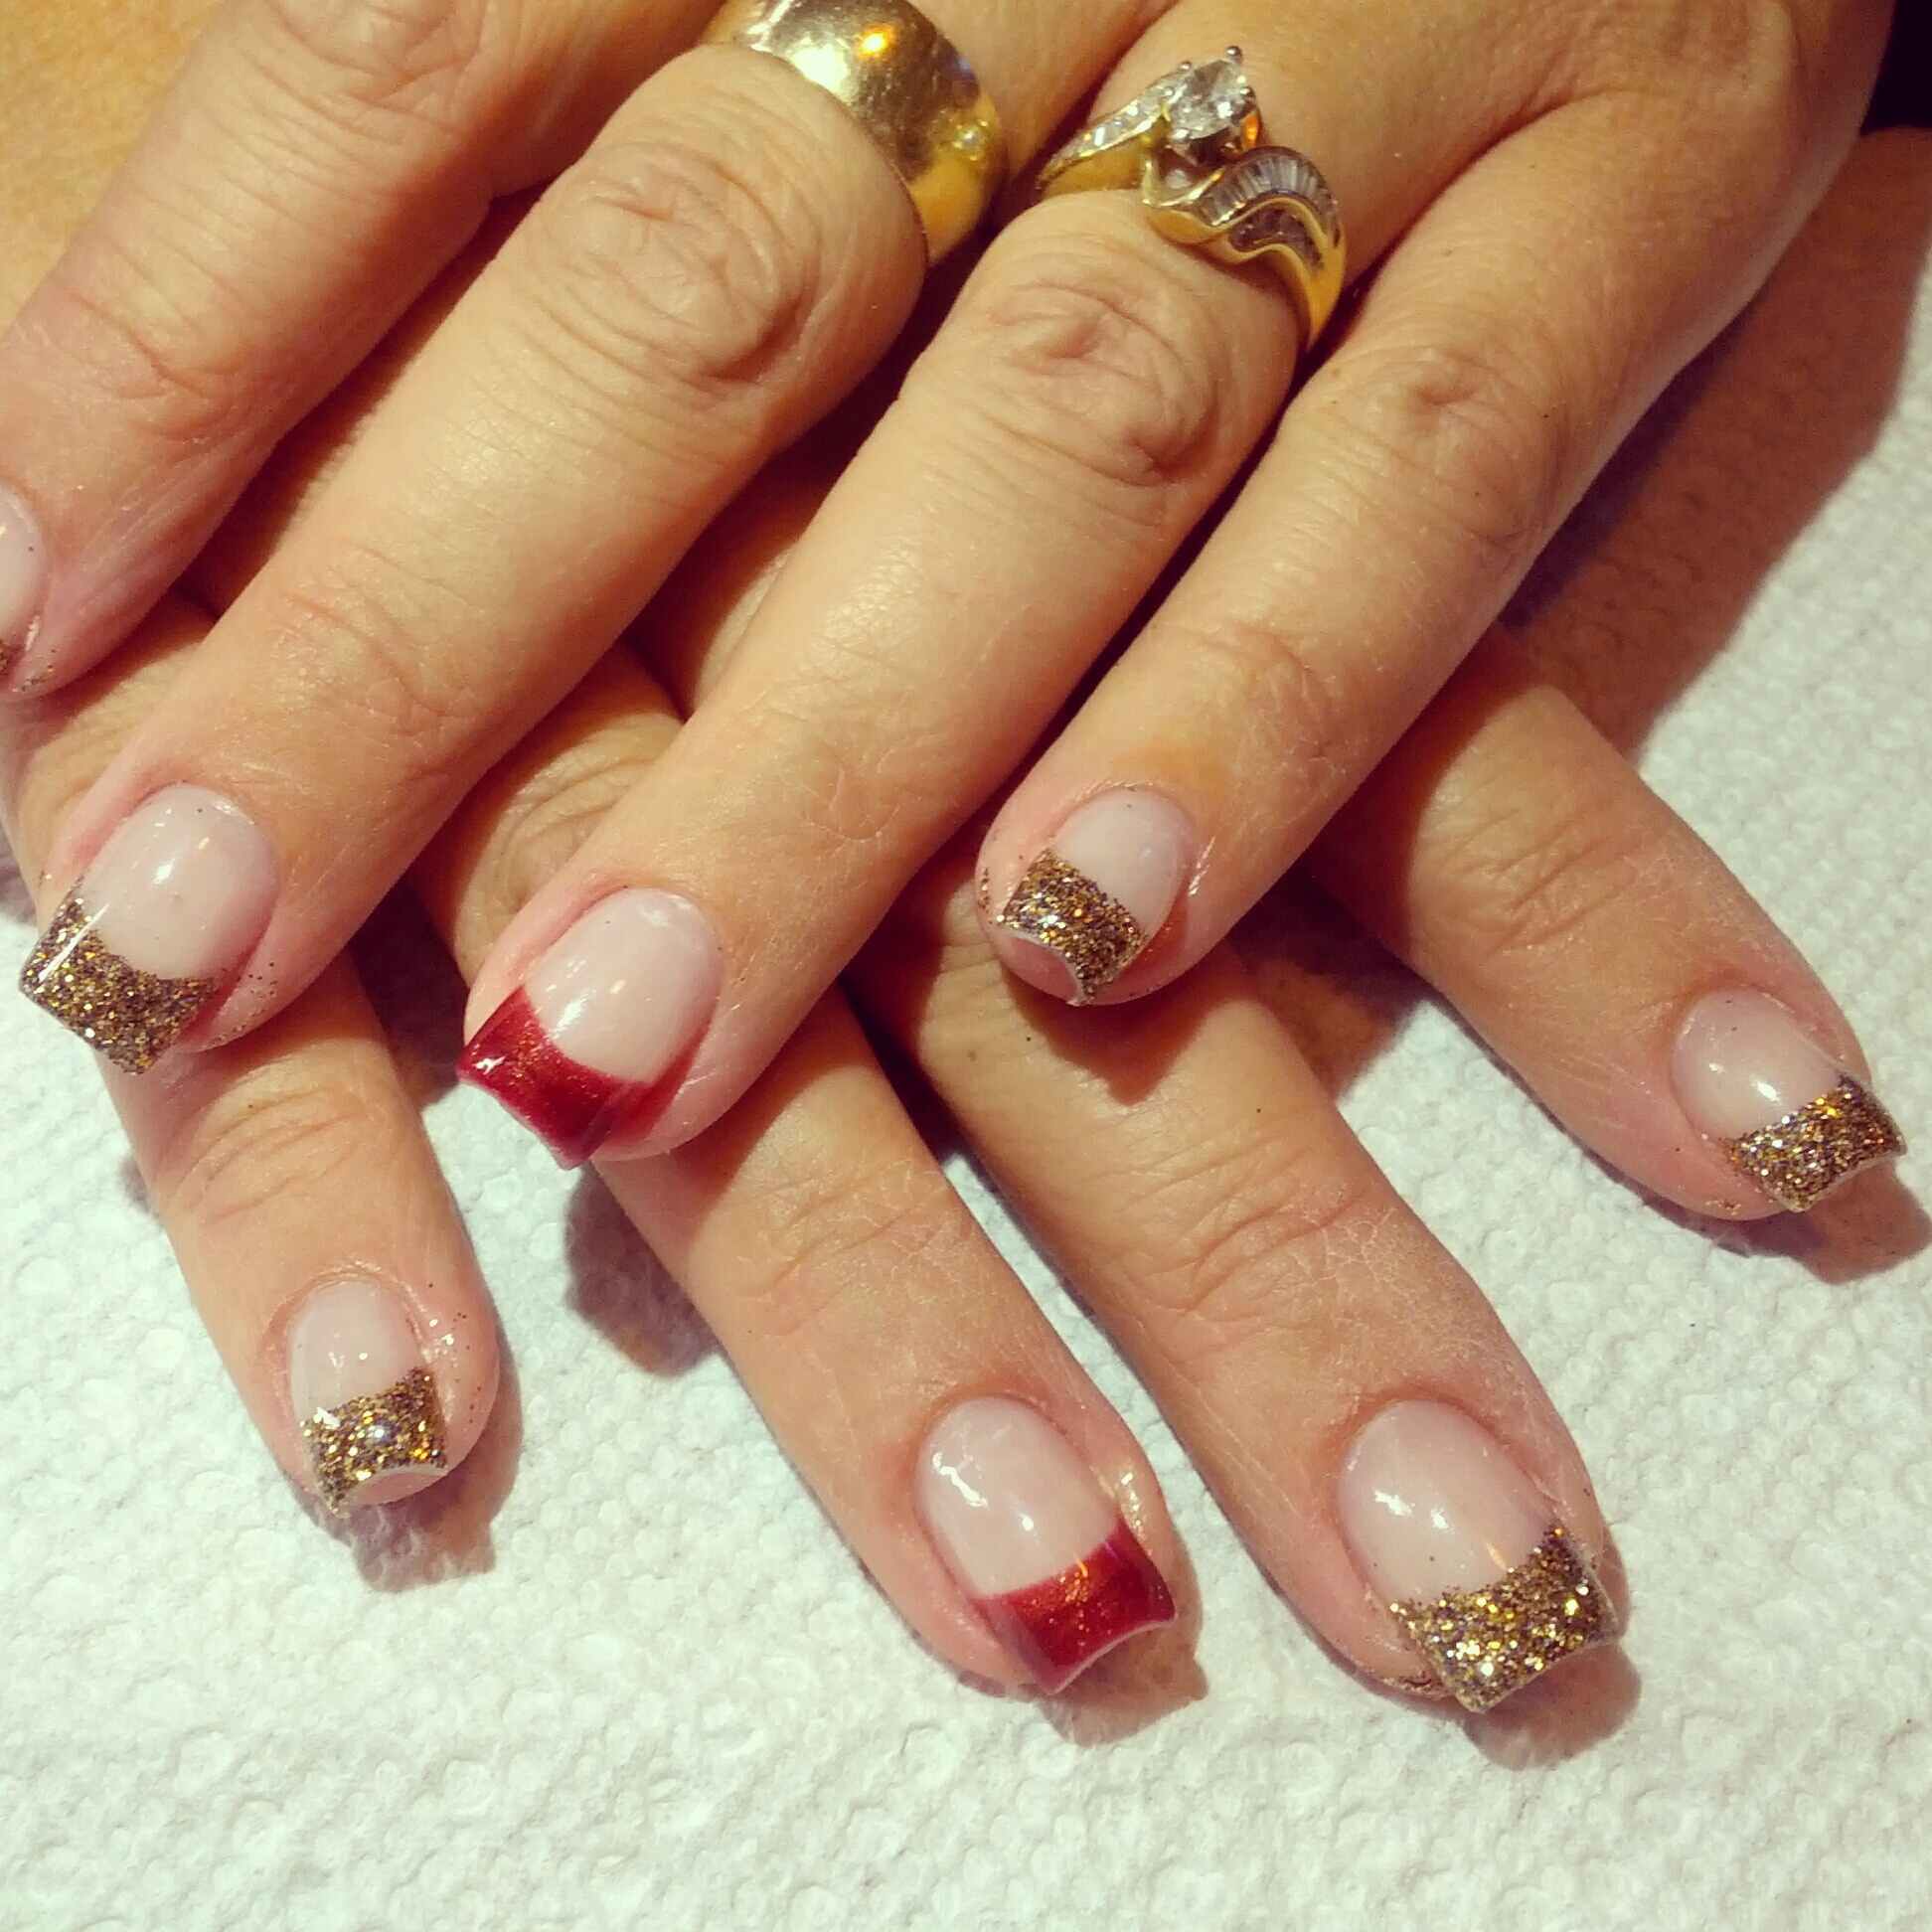 Gel Nails And Toes By Holly Washington, UT - KSL Local